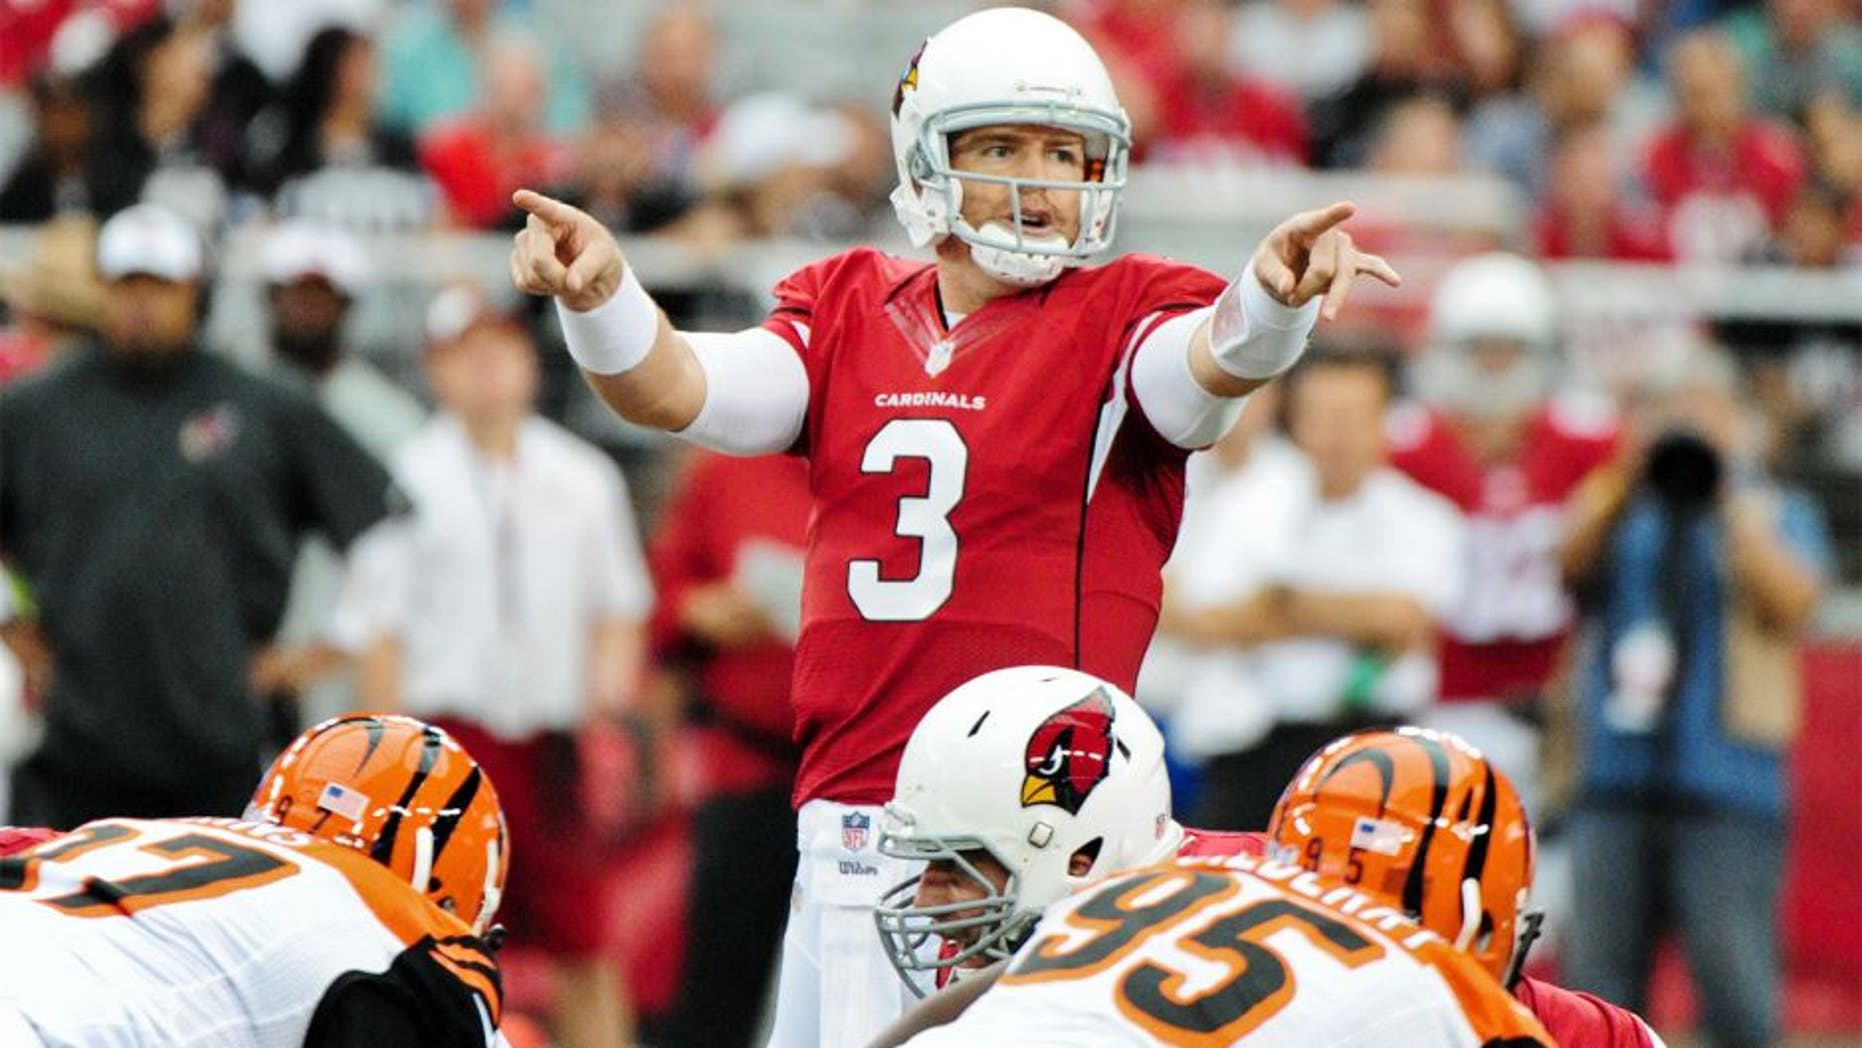 Aug 24, 2014; Glendale, AZ, USA; Arizona Cardinals quarterback Carson Palmer (3) signals to teammates prior to the snap during the first half against the Cincinnati Bengals at University of Phoenix Stadium. Mandatory Credit: Matt Kartozian-USA TODAY Sports